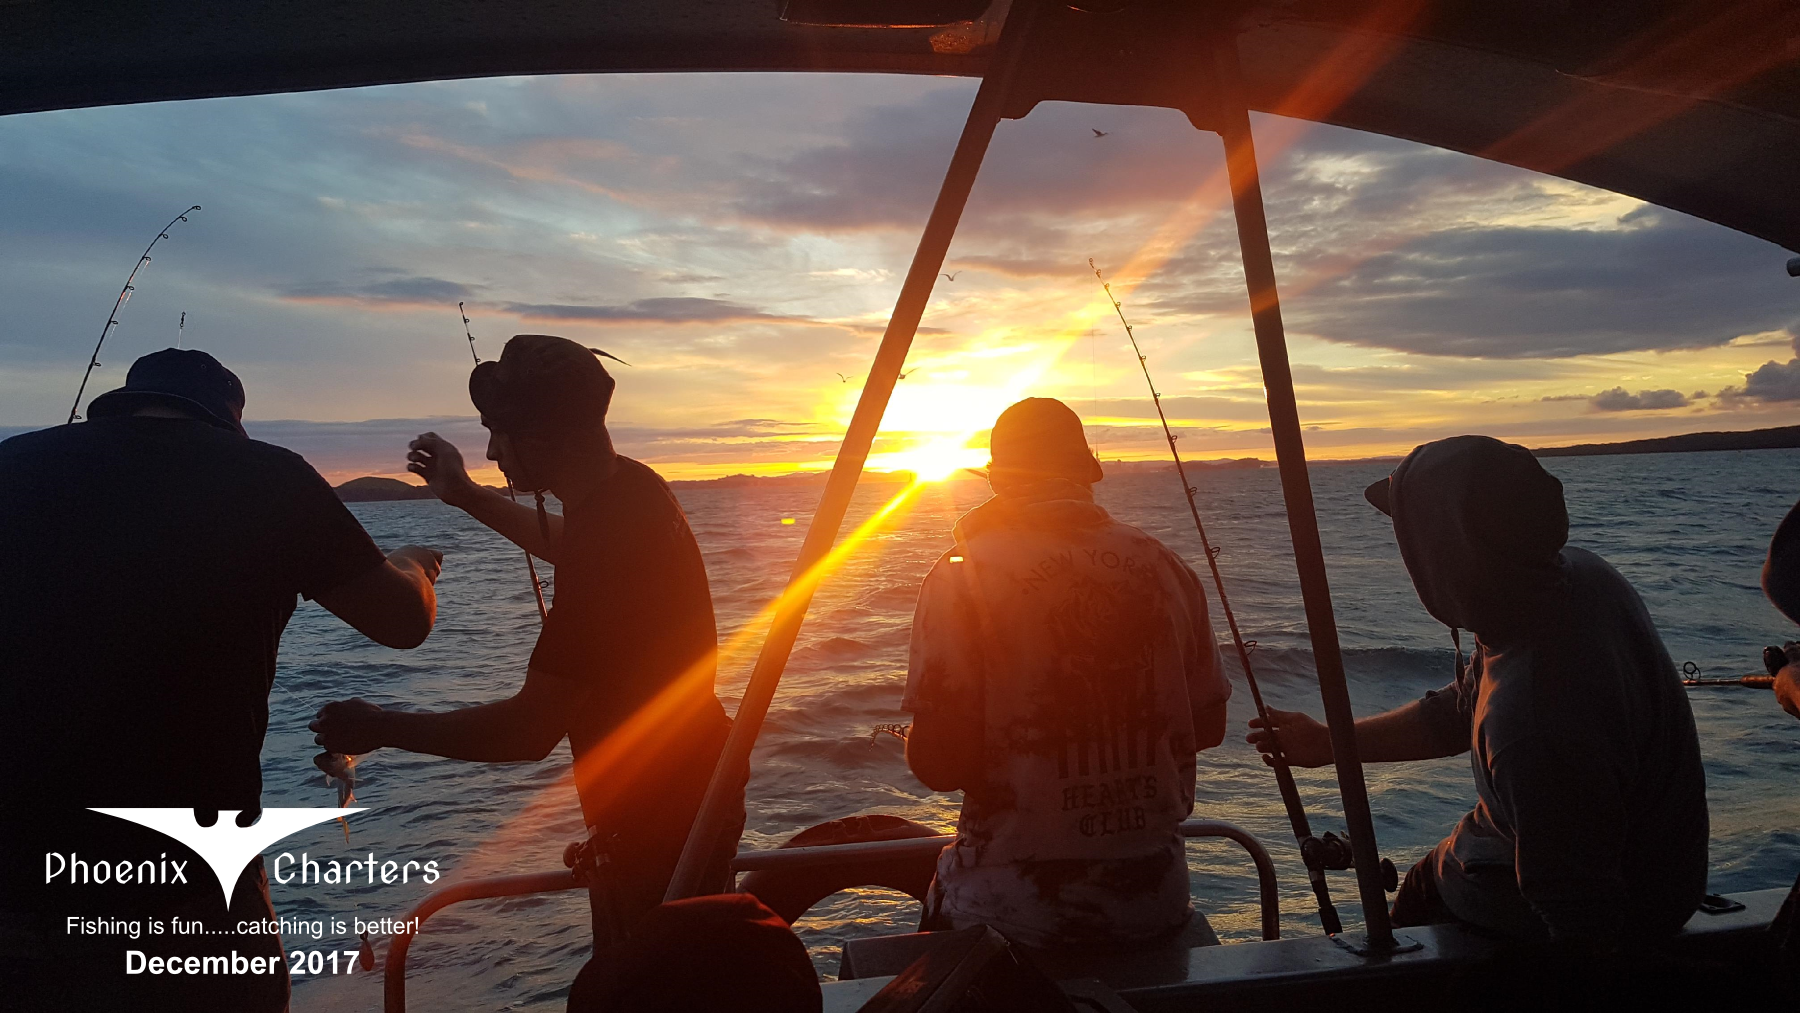 Book your next fishing charter with Phoenix Charters